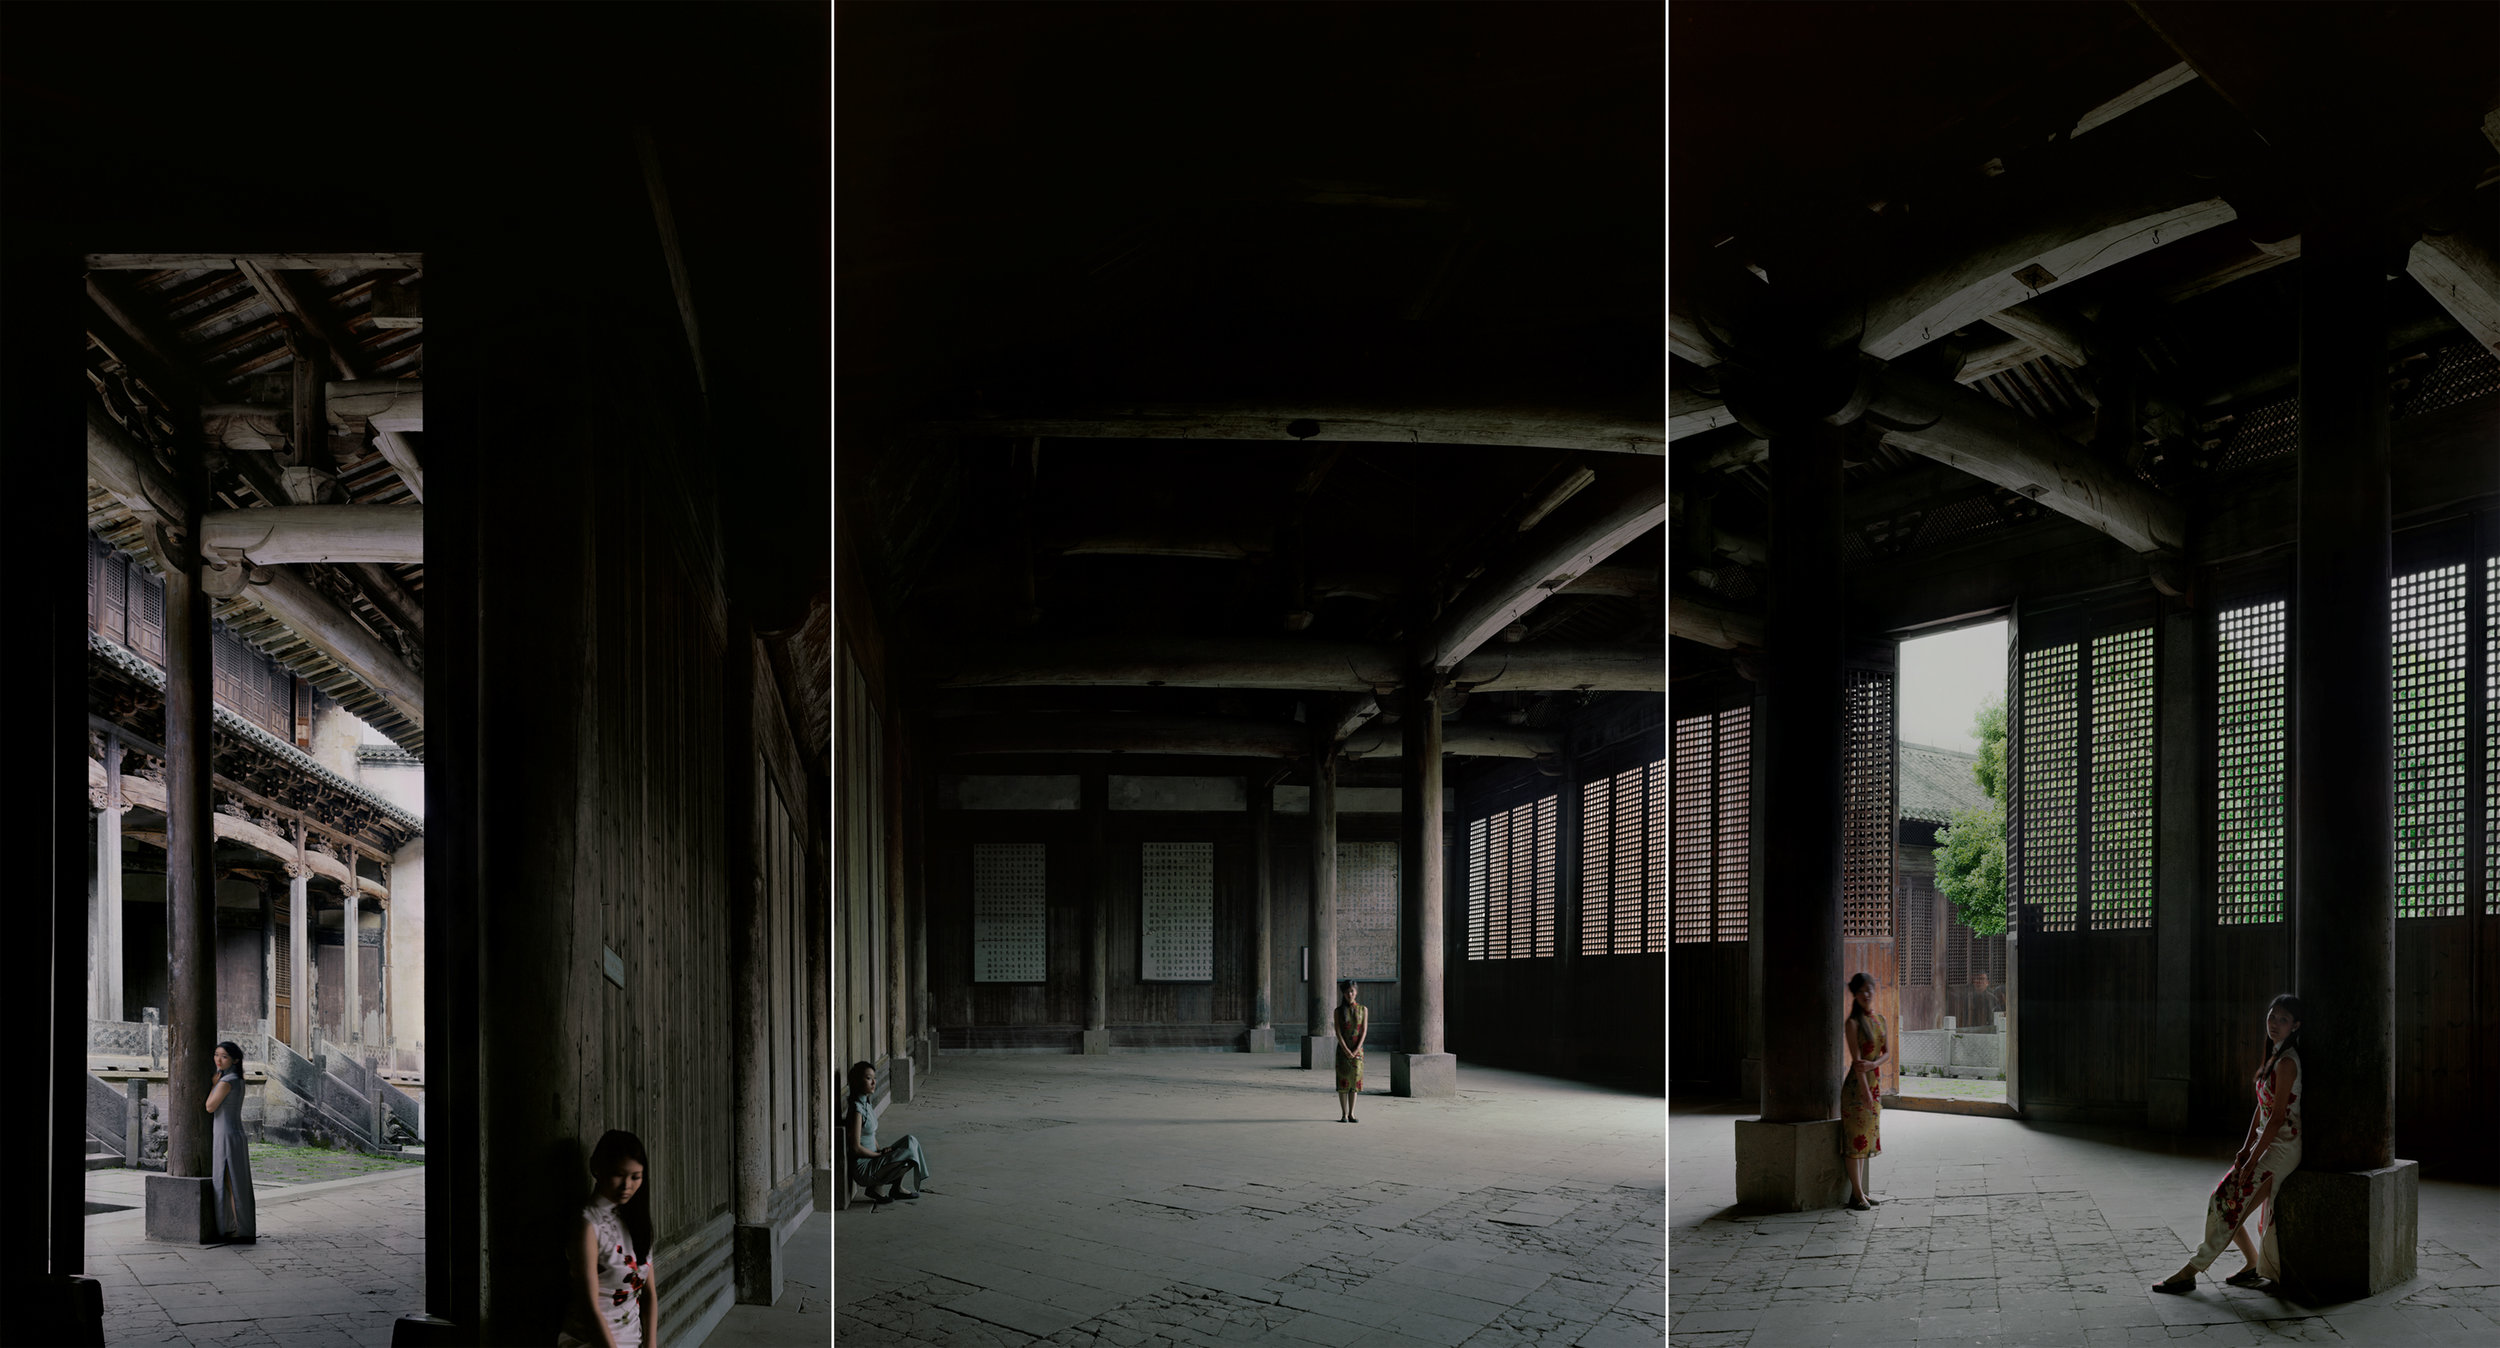 AnHui-Bao Lunge No. 2 (Double Rhapsody Series), 2011, 47.2 x 87.4 inches, Chromogenic photograph